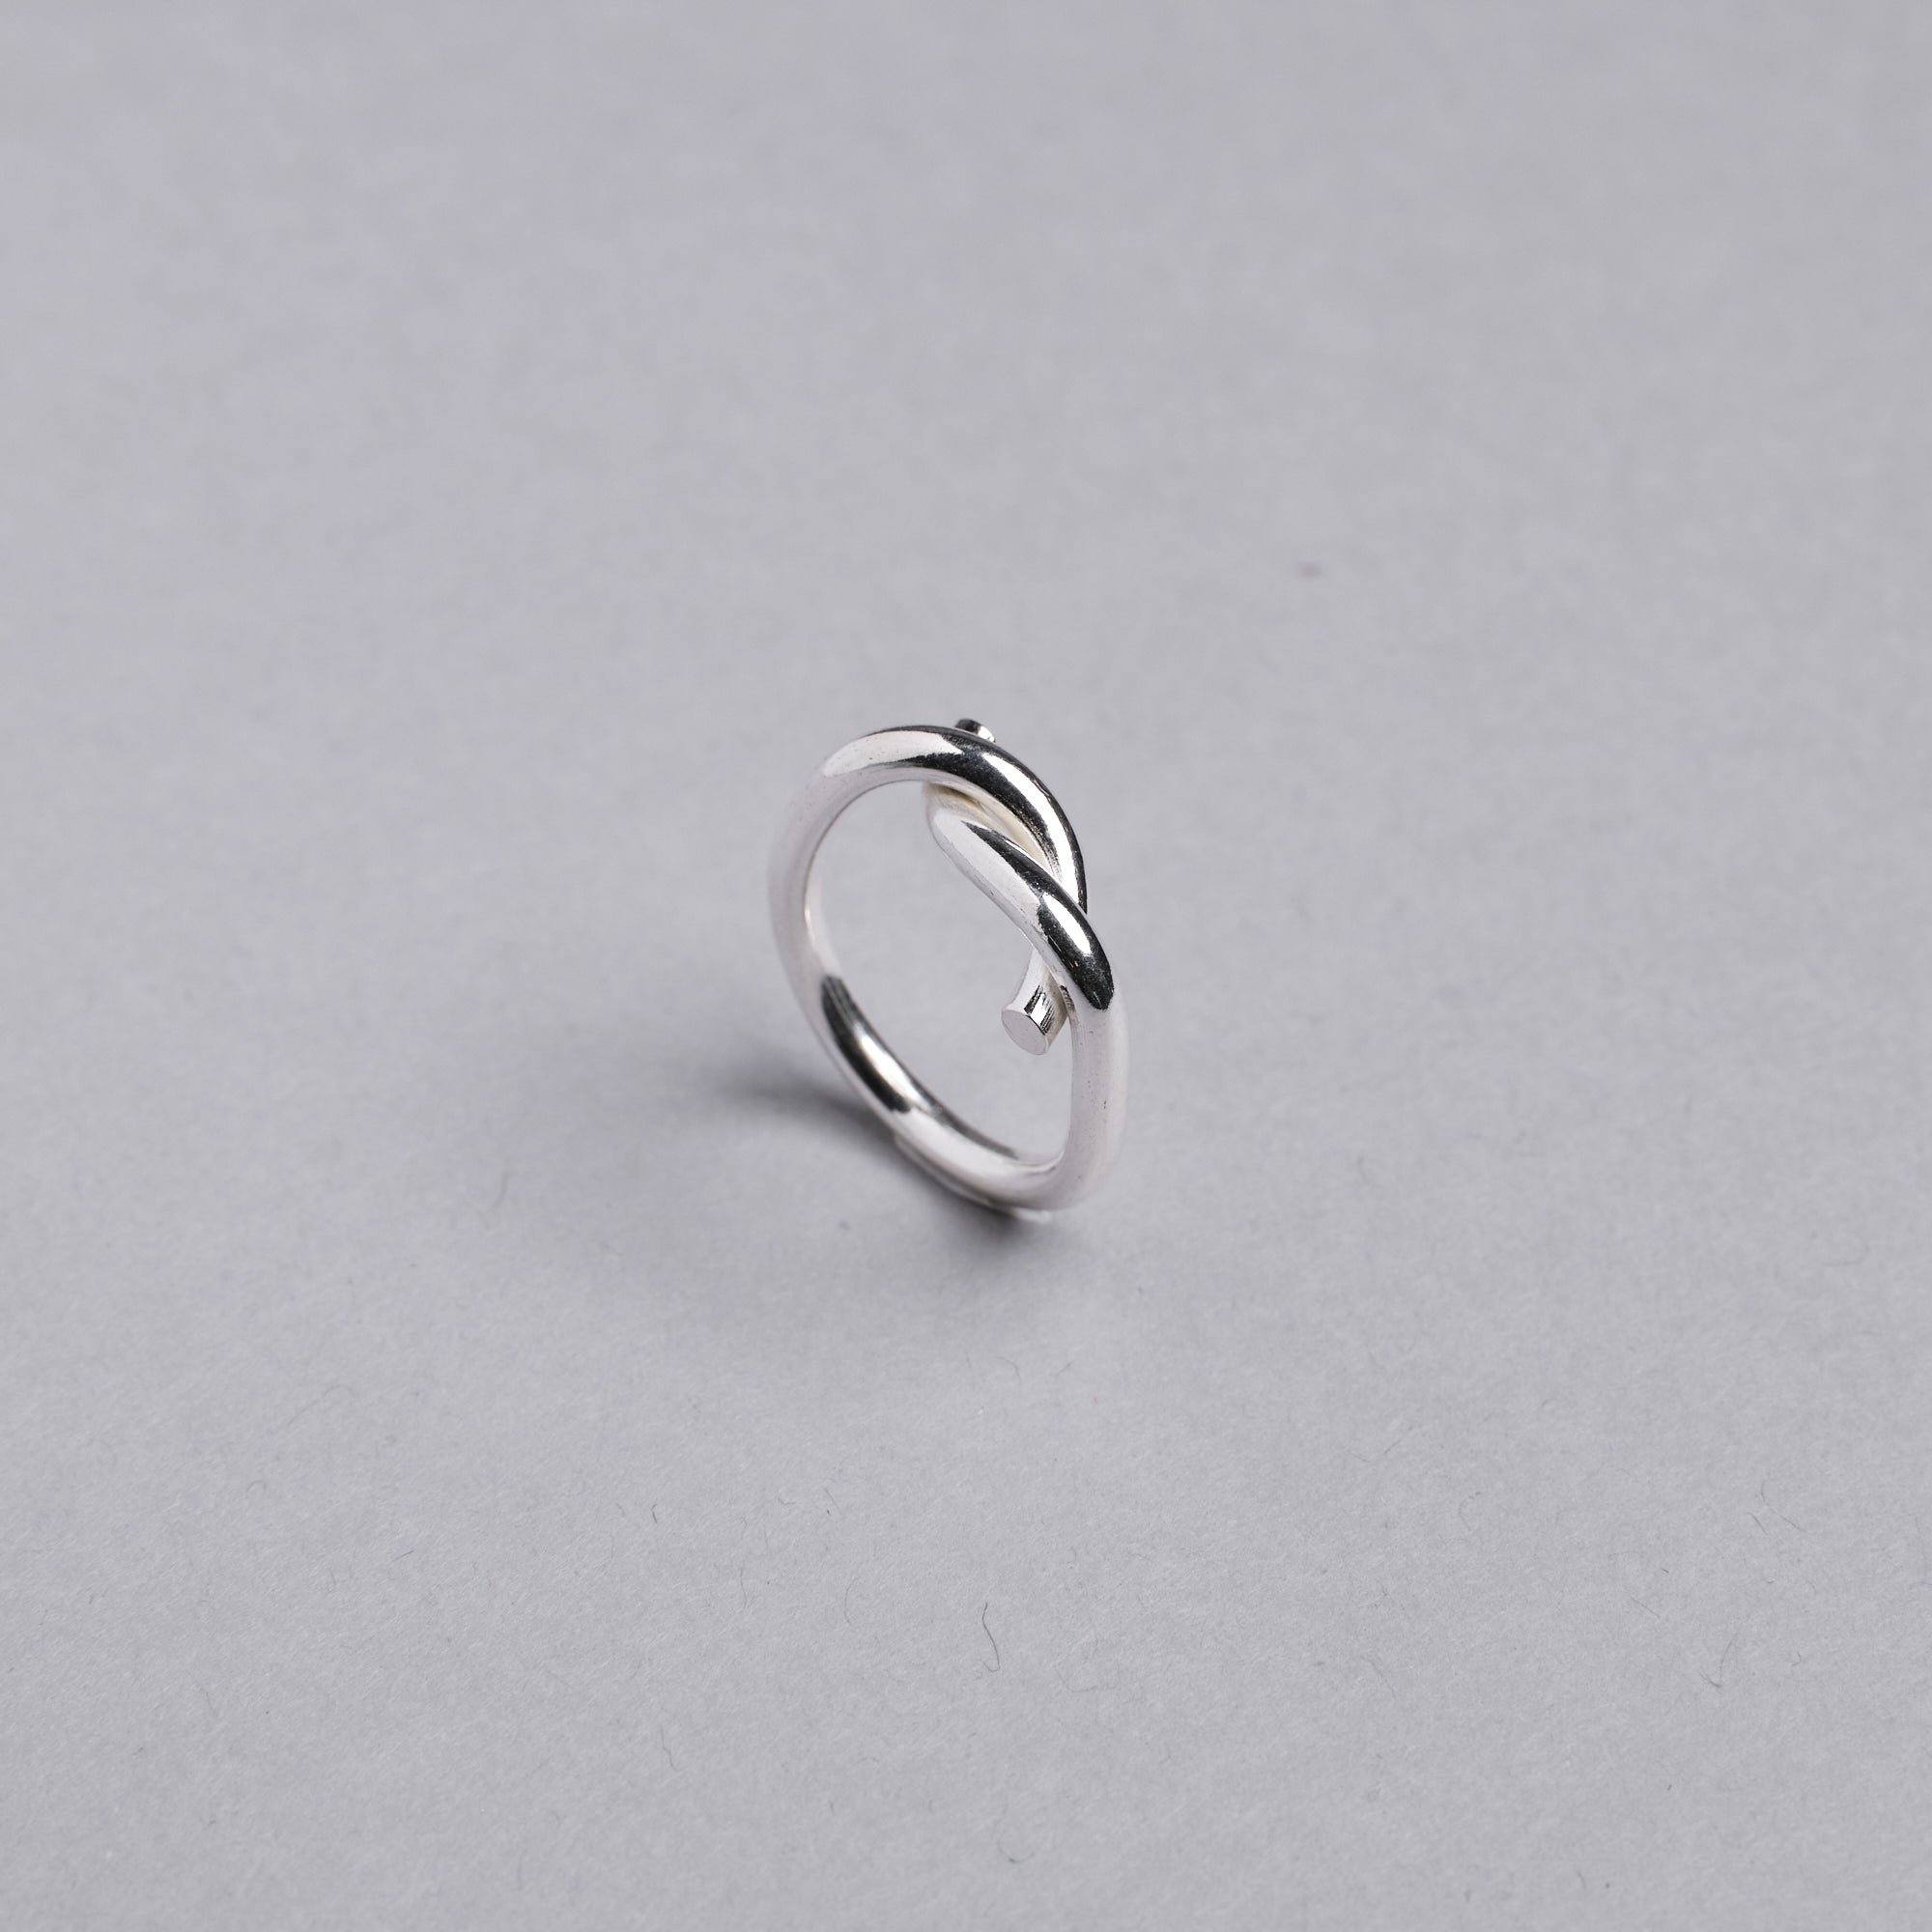 Silver Infinity Twist Ring by Otis Jaxon